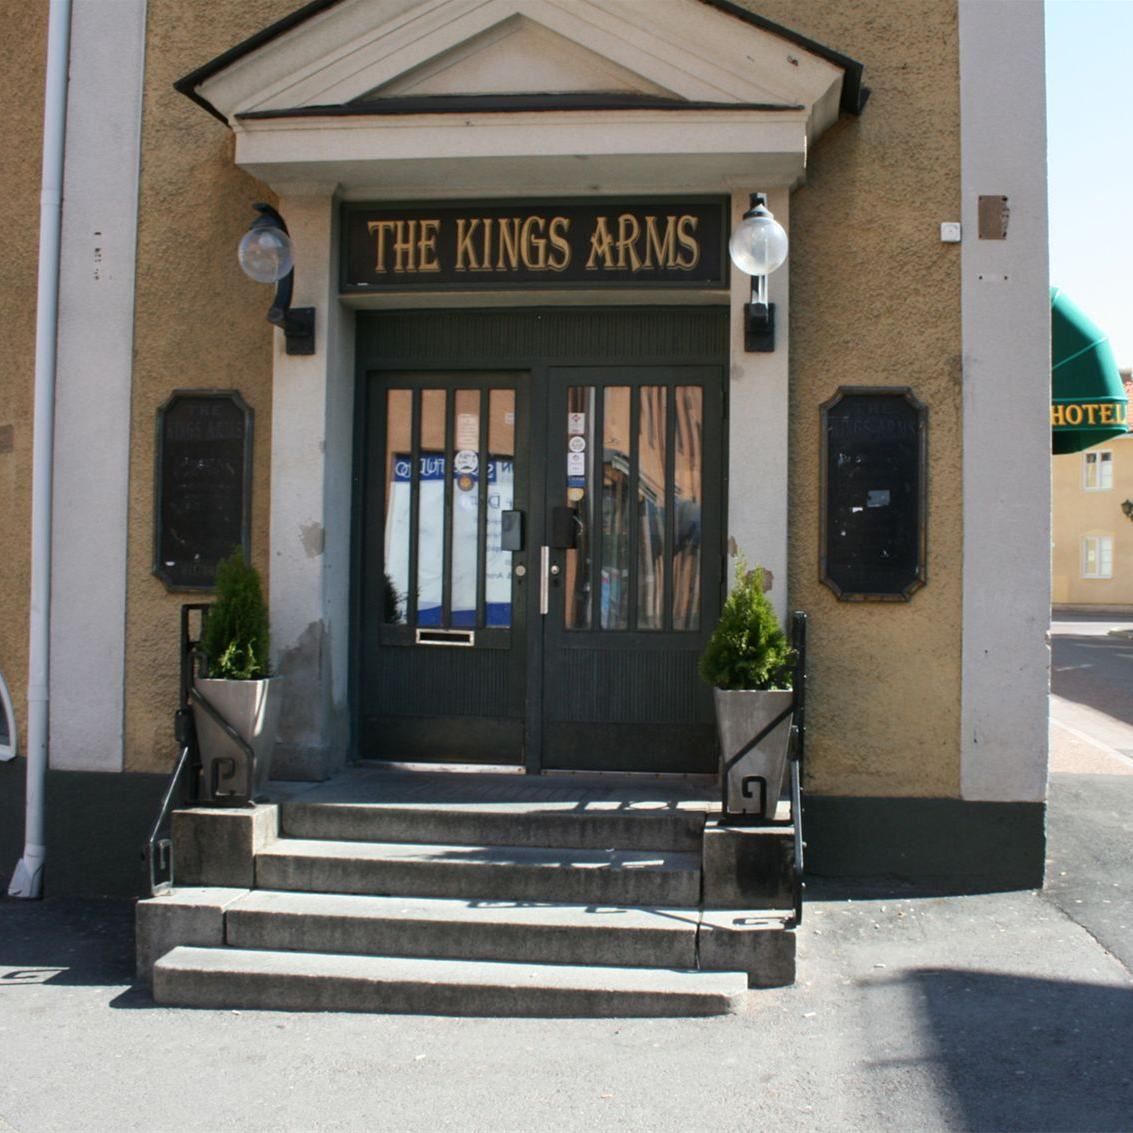 Hedemora Stadshotell - The Kings Arms